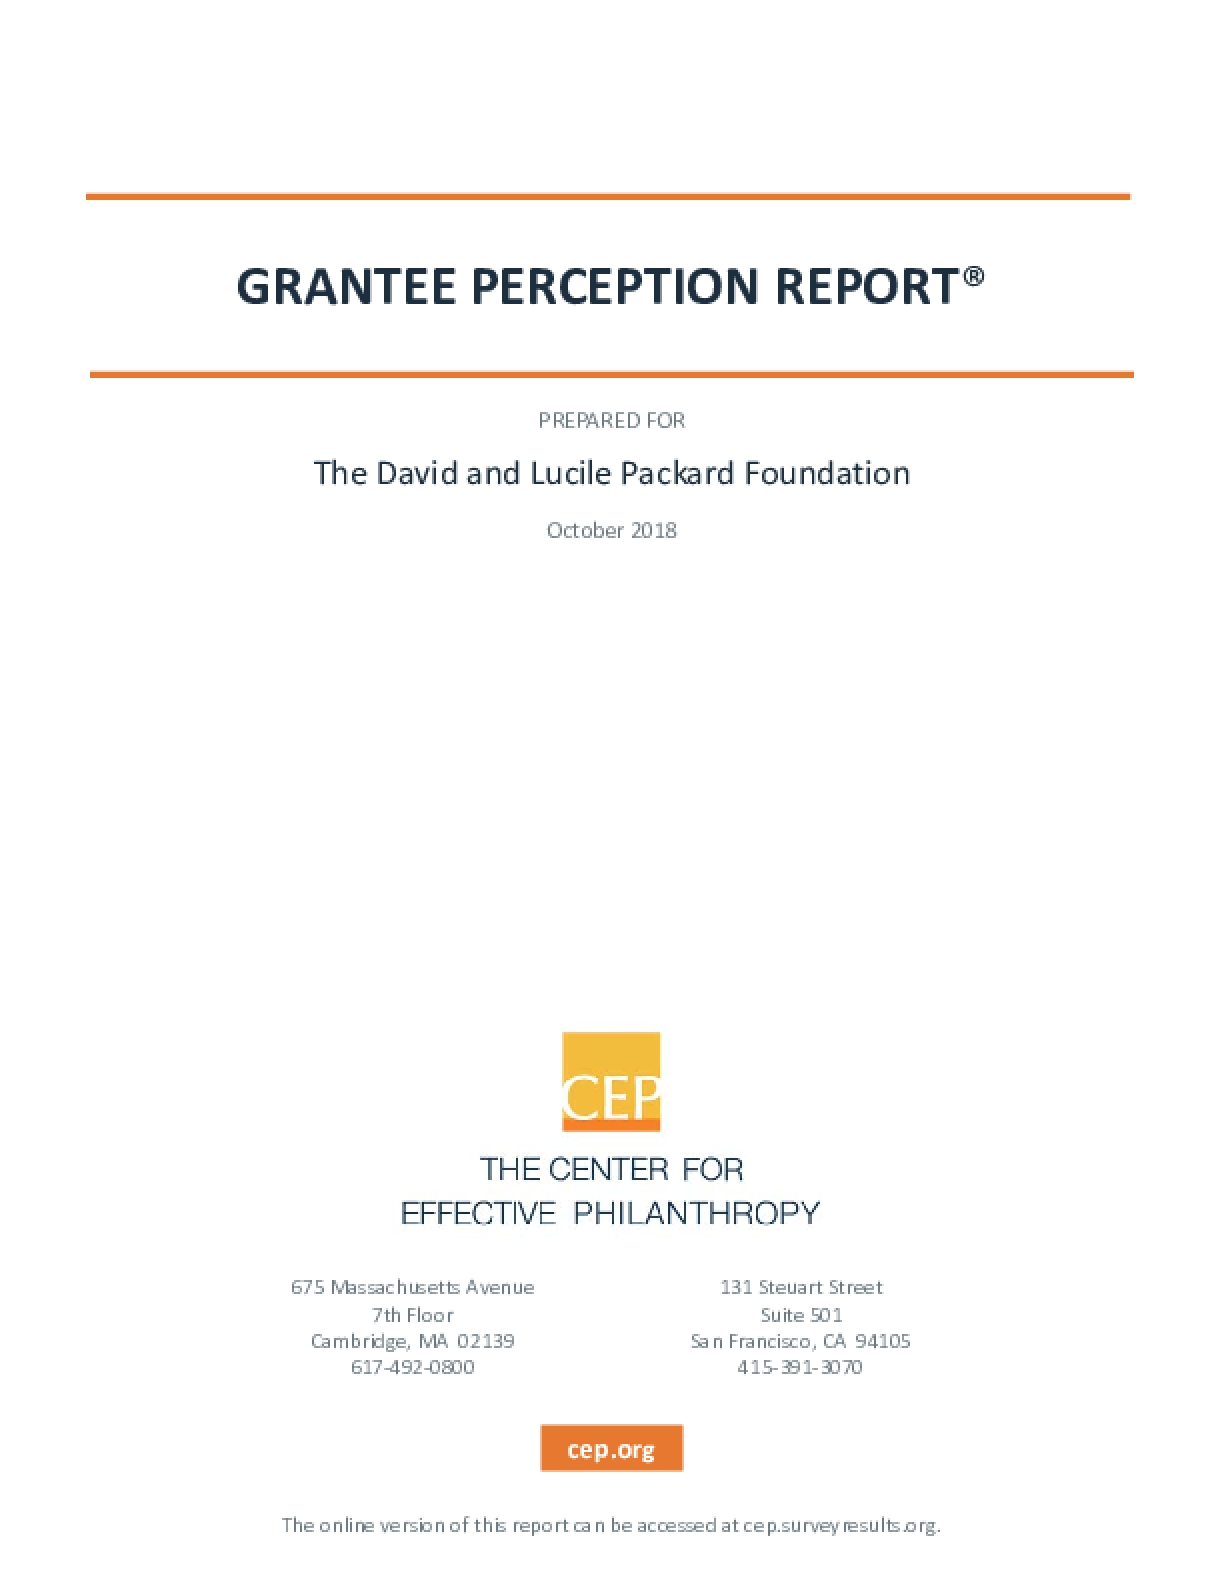 Grantee Perception Report: Prepared for The David and Lucile Packard Foundation